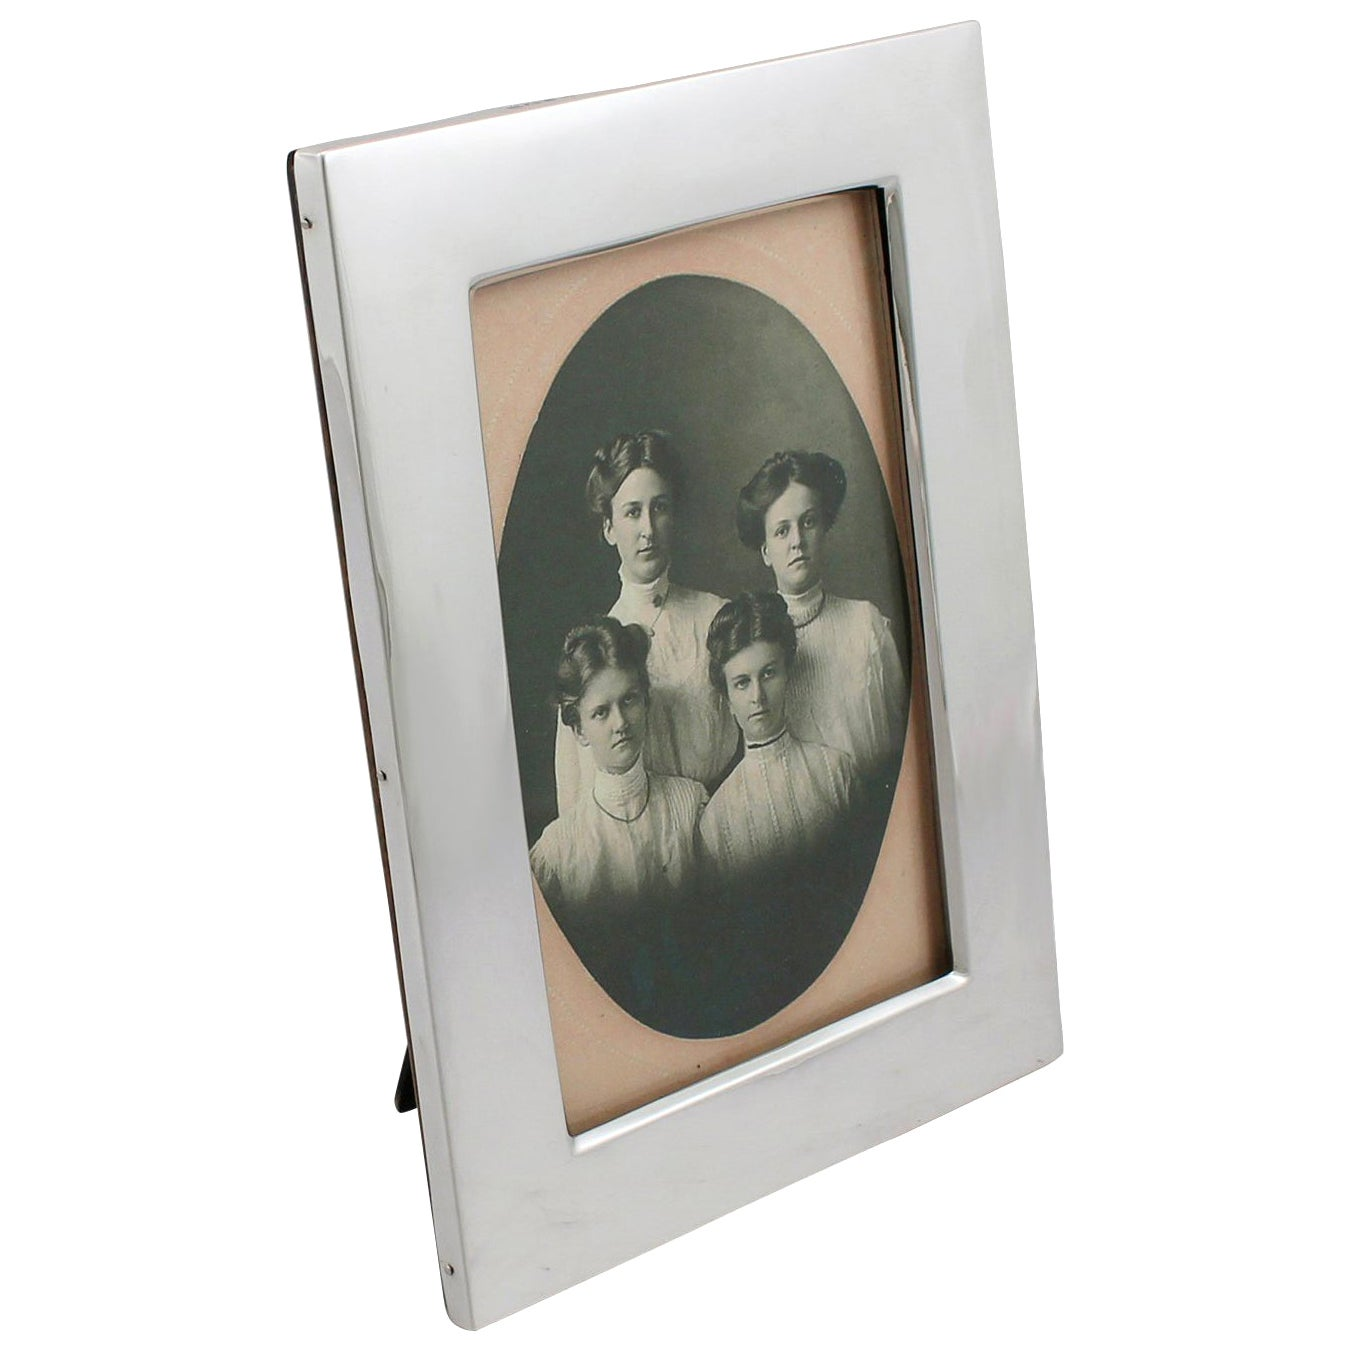 1922 Antique Birmingham Sterling Silver Photograph Frame